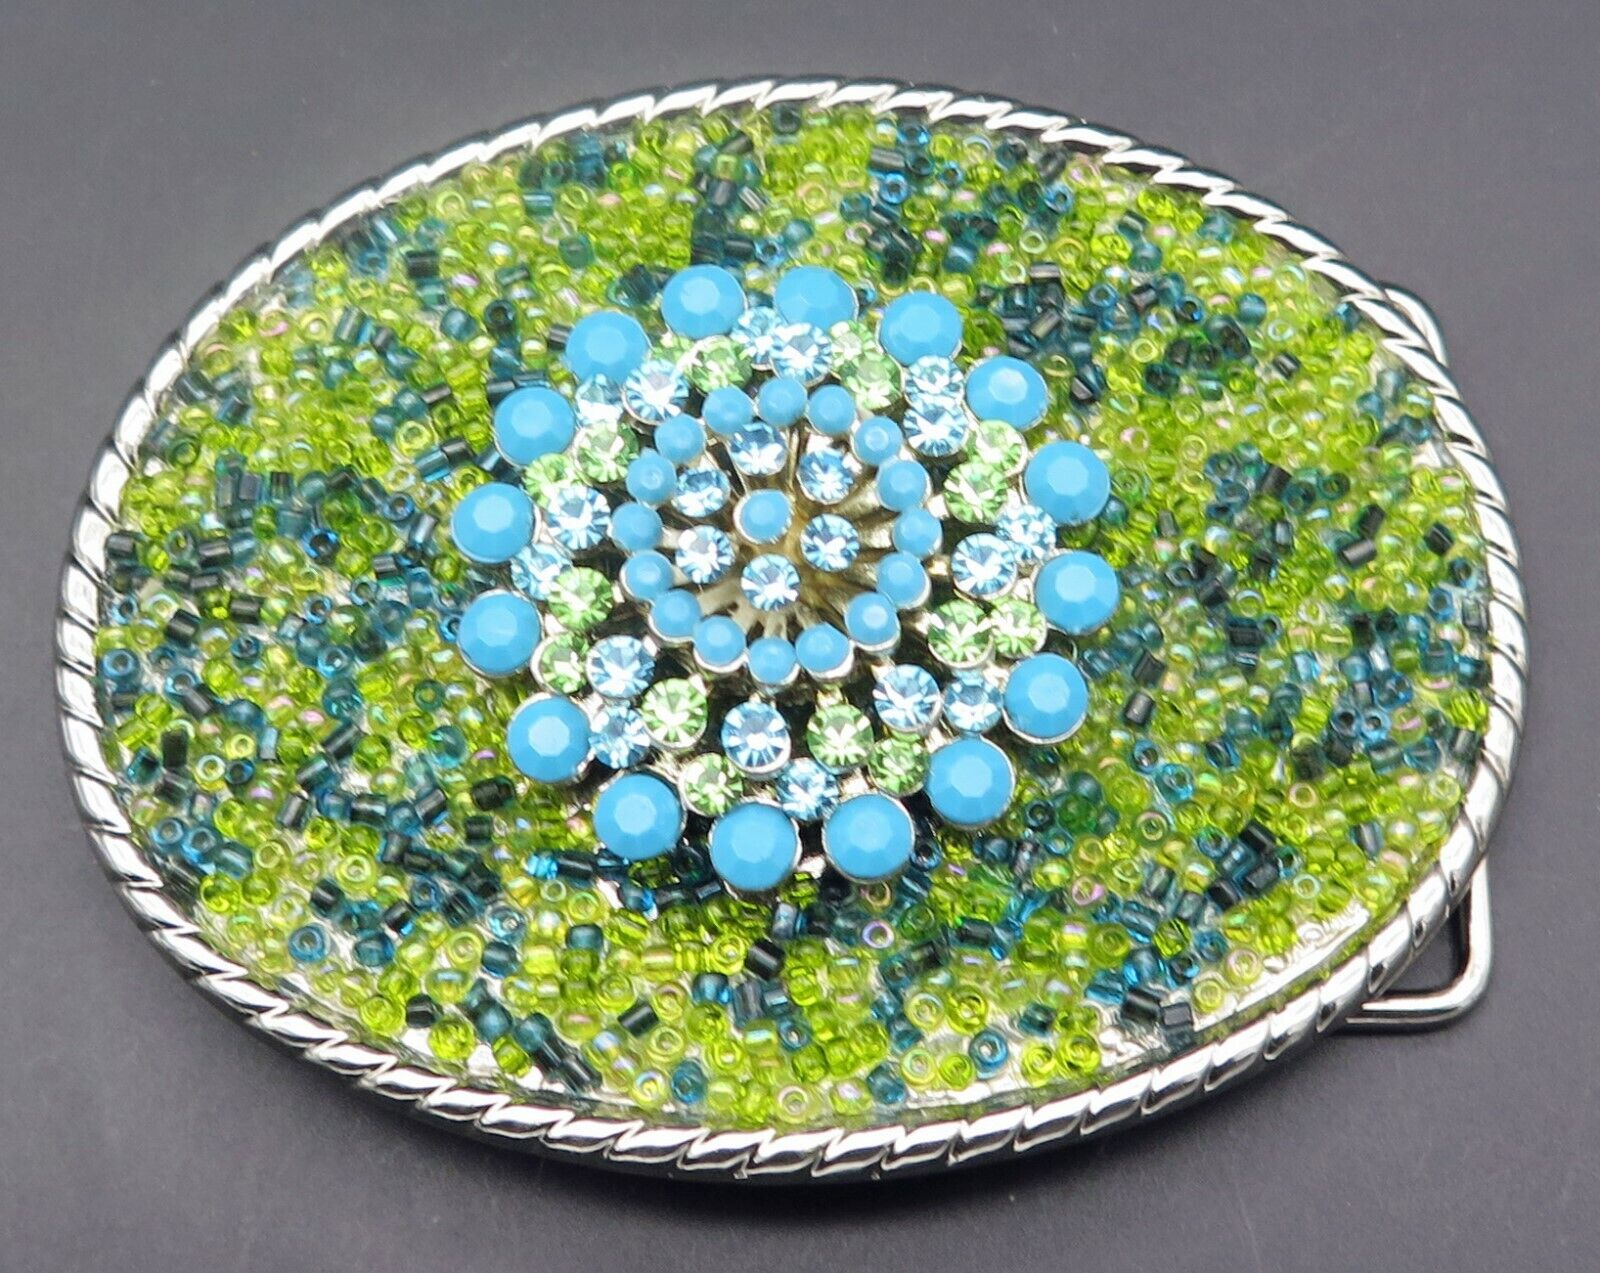 Flower Floral Stones & Beads Handcrafted Green & Turquoise Colors Belt Buckle